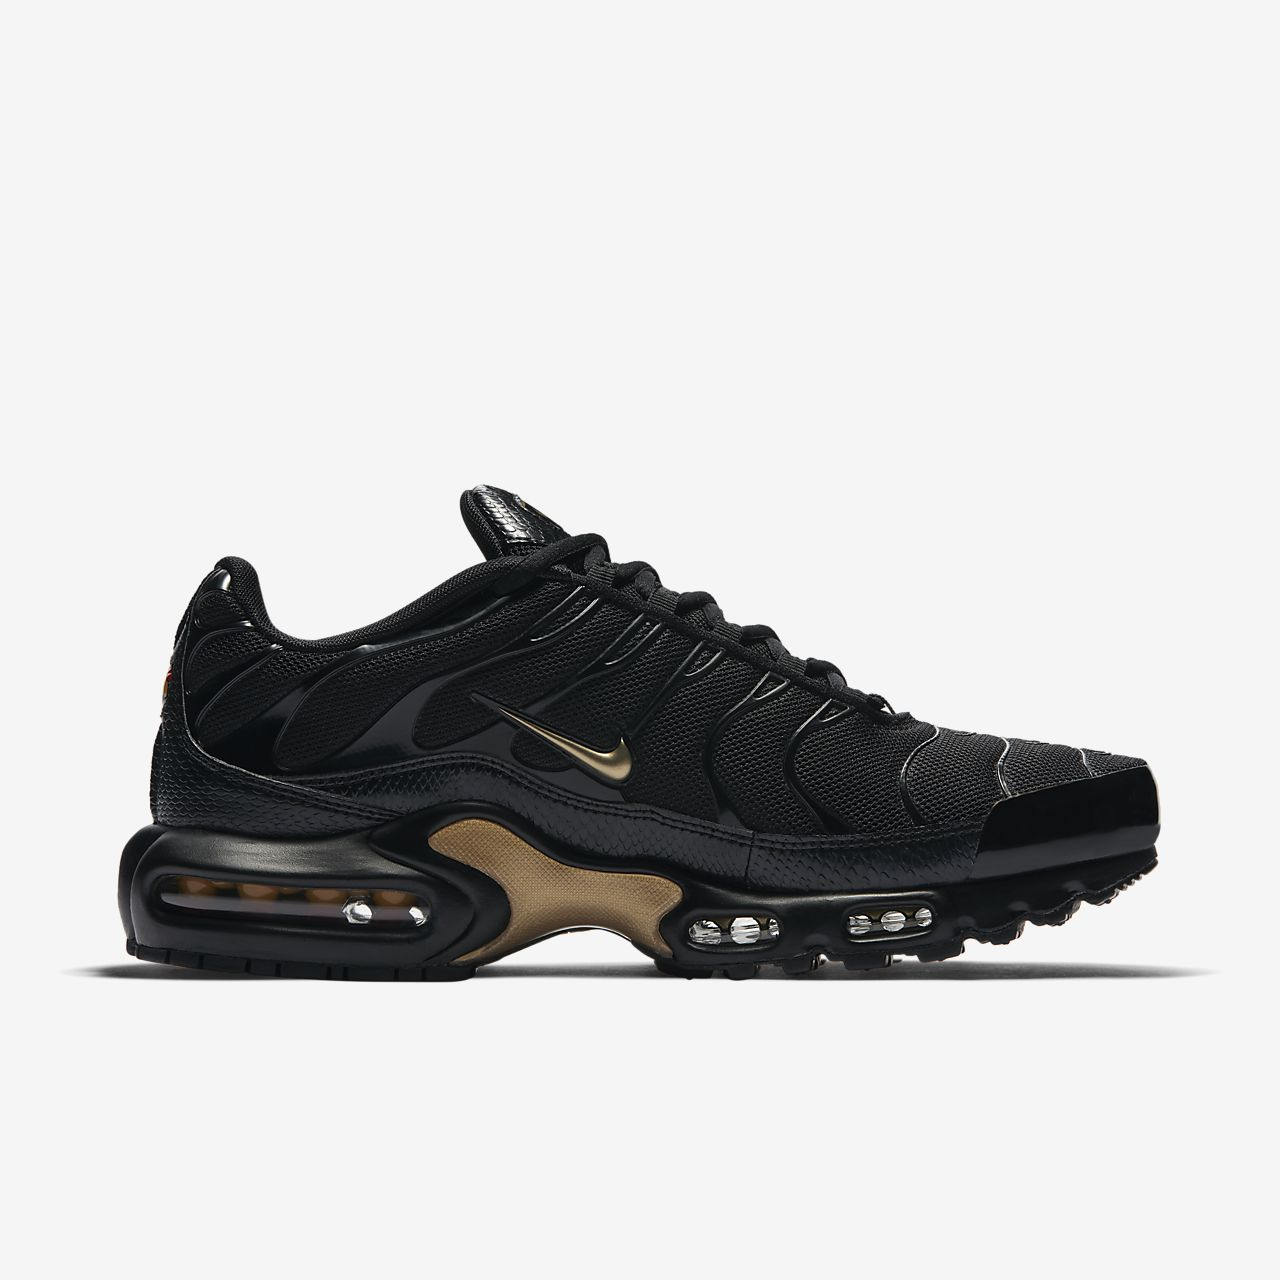 All Black Shoes And Sole Air Max